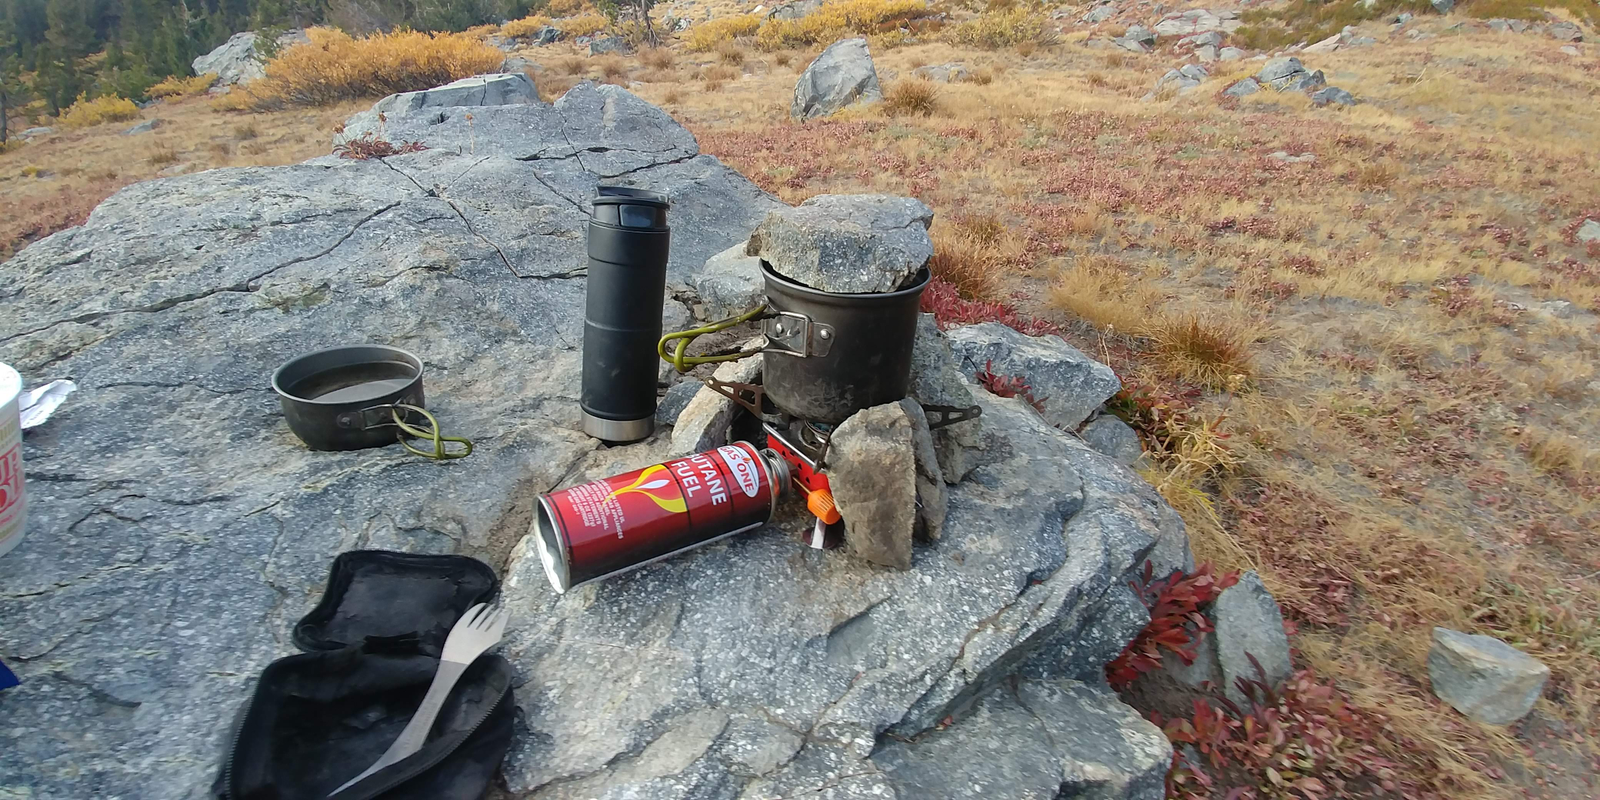 I was trying to get creative to block the wind from stove as well as keeping the heat in my pot to boil water faster. The smaller pot used as a lid still proved to be more efficient than a rock of course but I figured I would give it a try. Dinner was a nice warm reward for the day again.